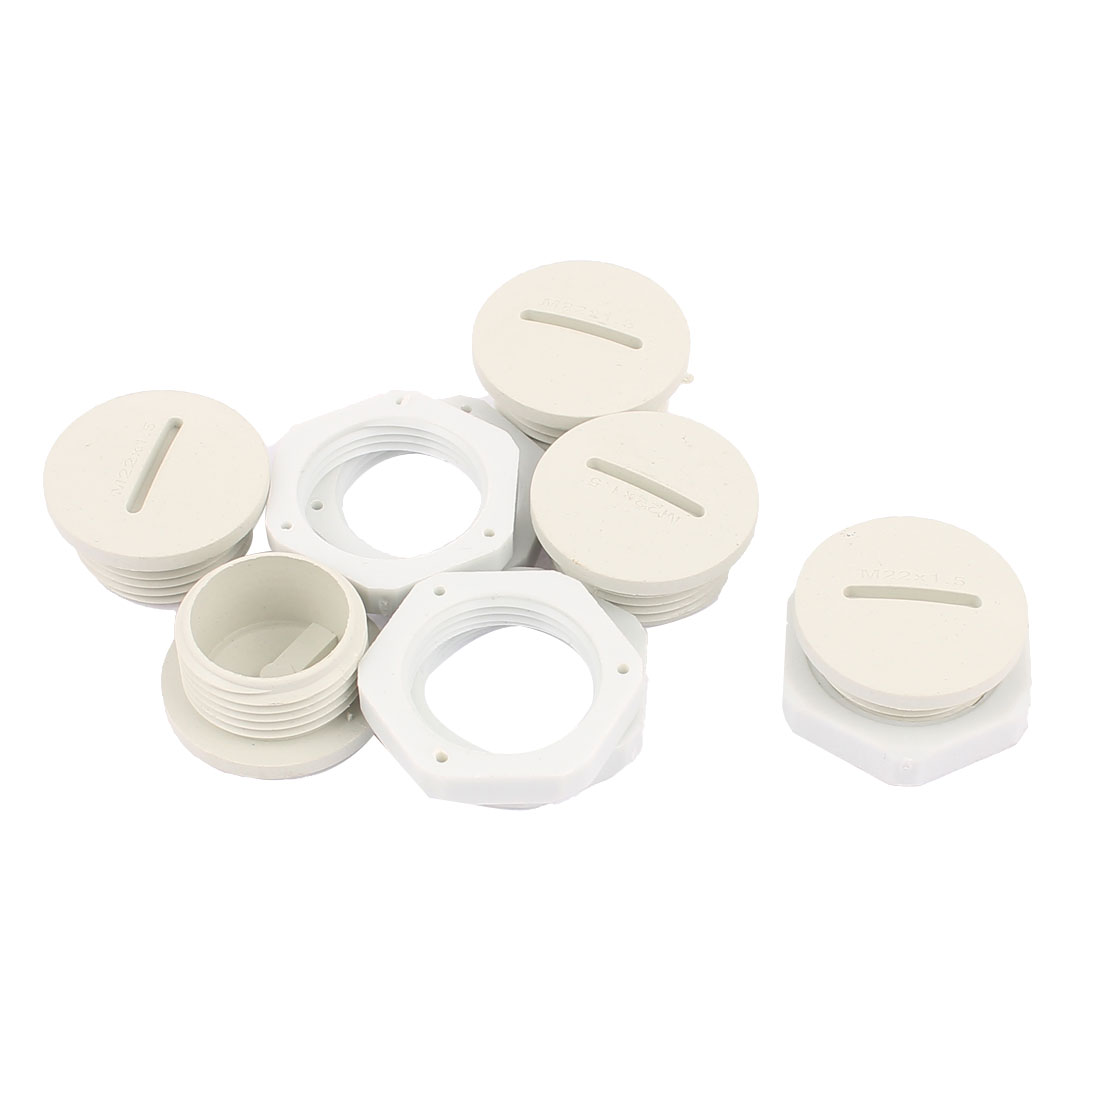 M22 x 1.5cm Plastic Round Head Pipe Adapter White 5Pcs